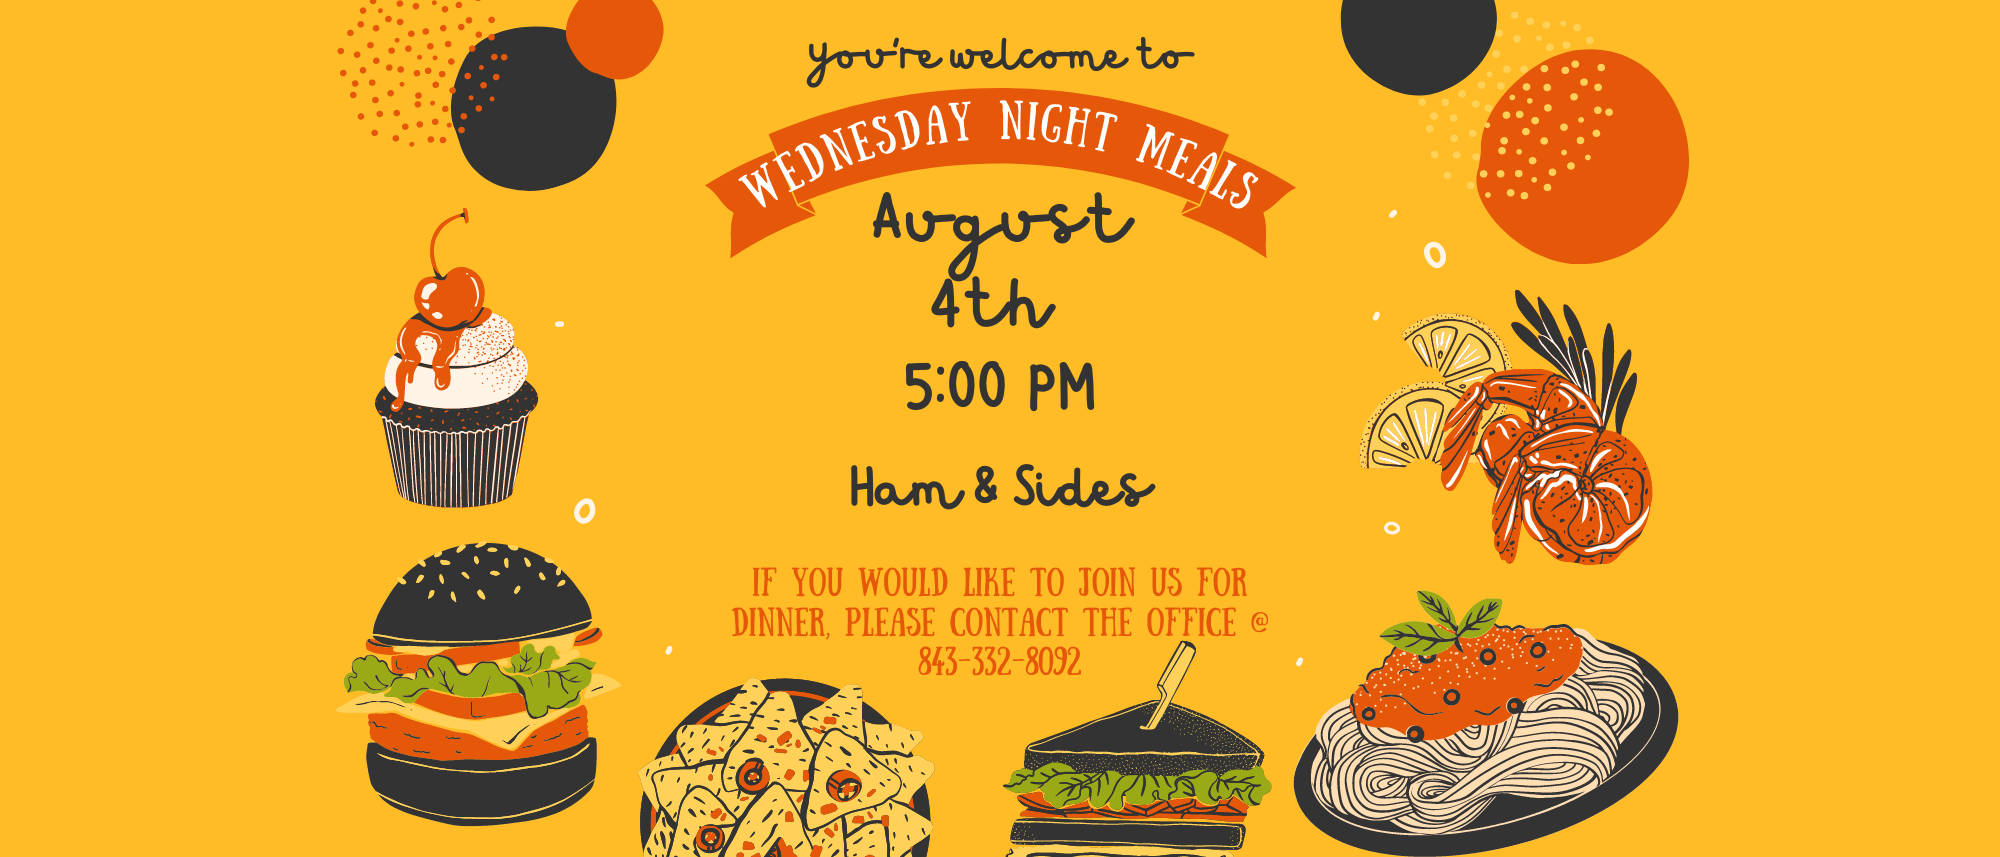 Wednesday Night Meals 1a